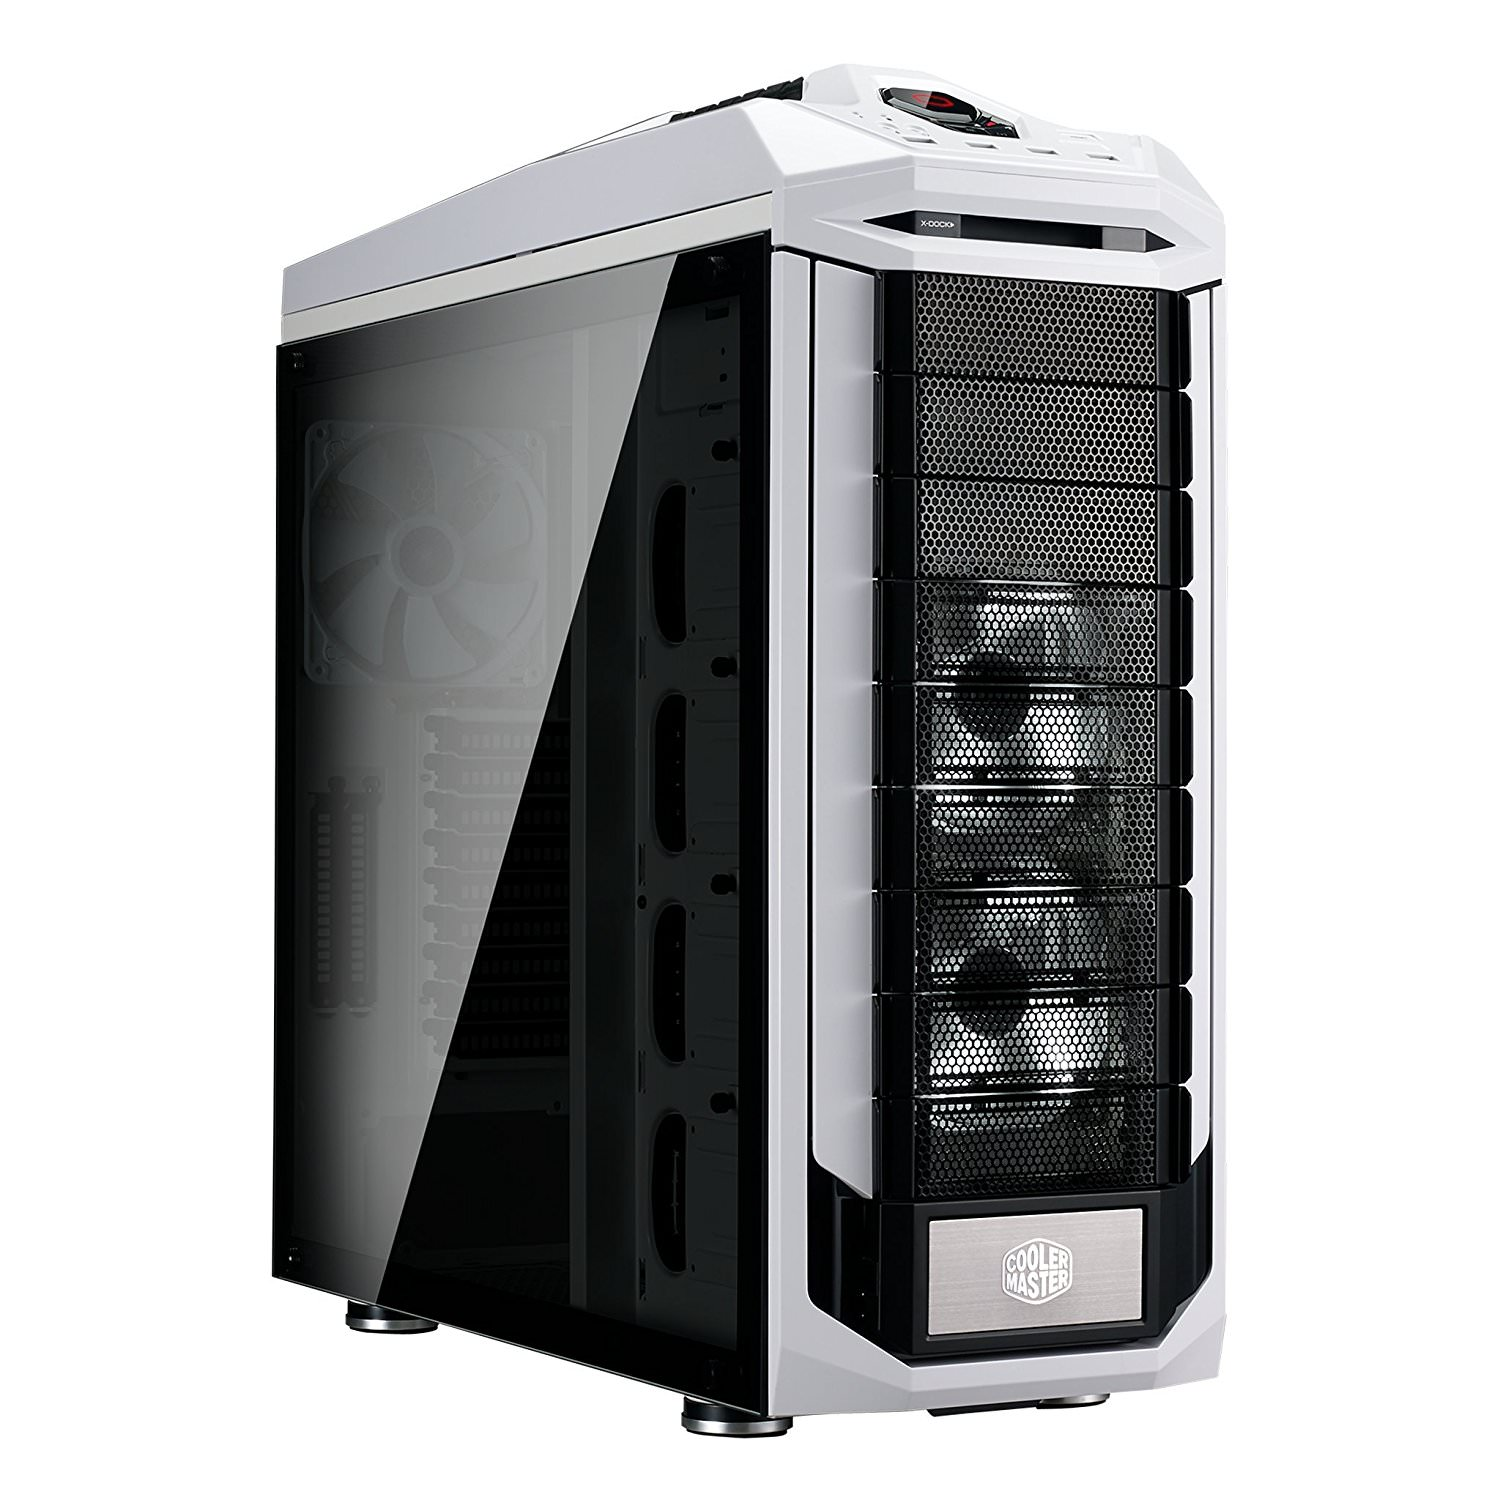 Cooler Master Stryker SE - Gaming Full Tower Computer Case with USB 3.0 Ports and Carrying Handle (SGC-5000W-KWN2)